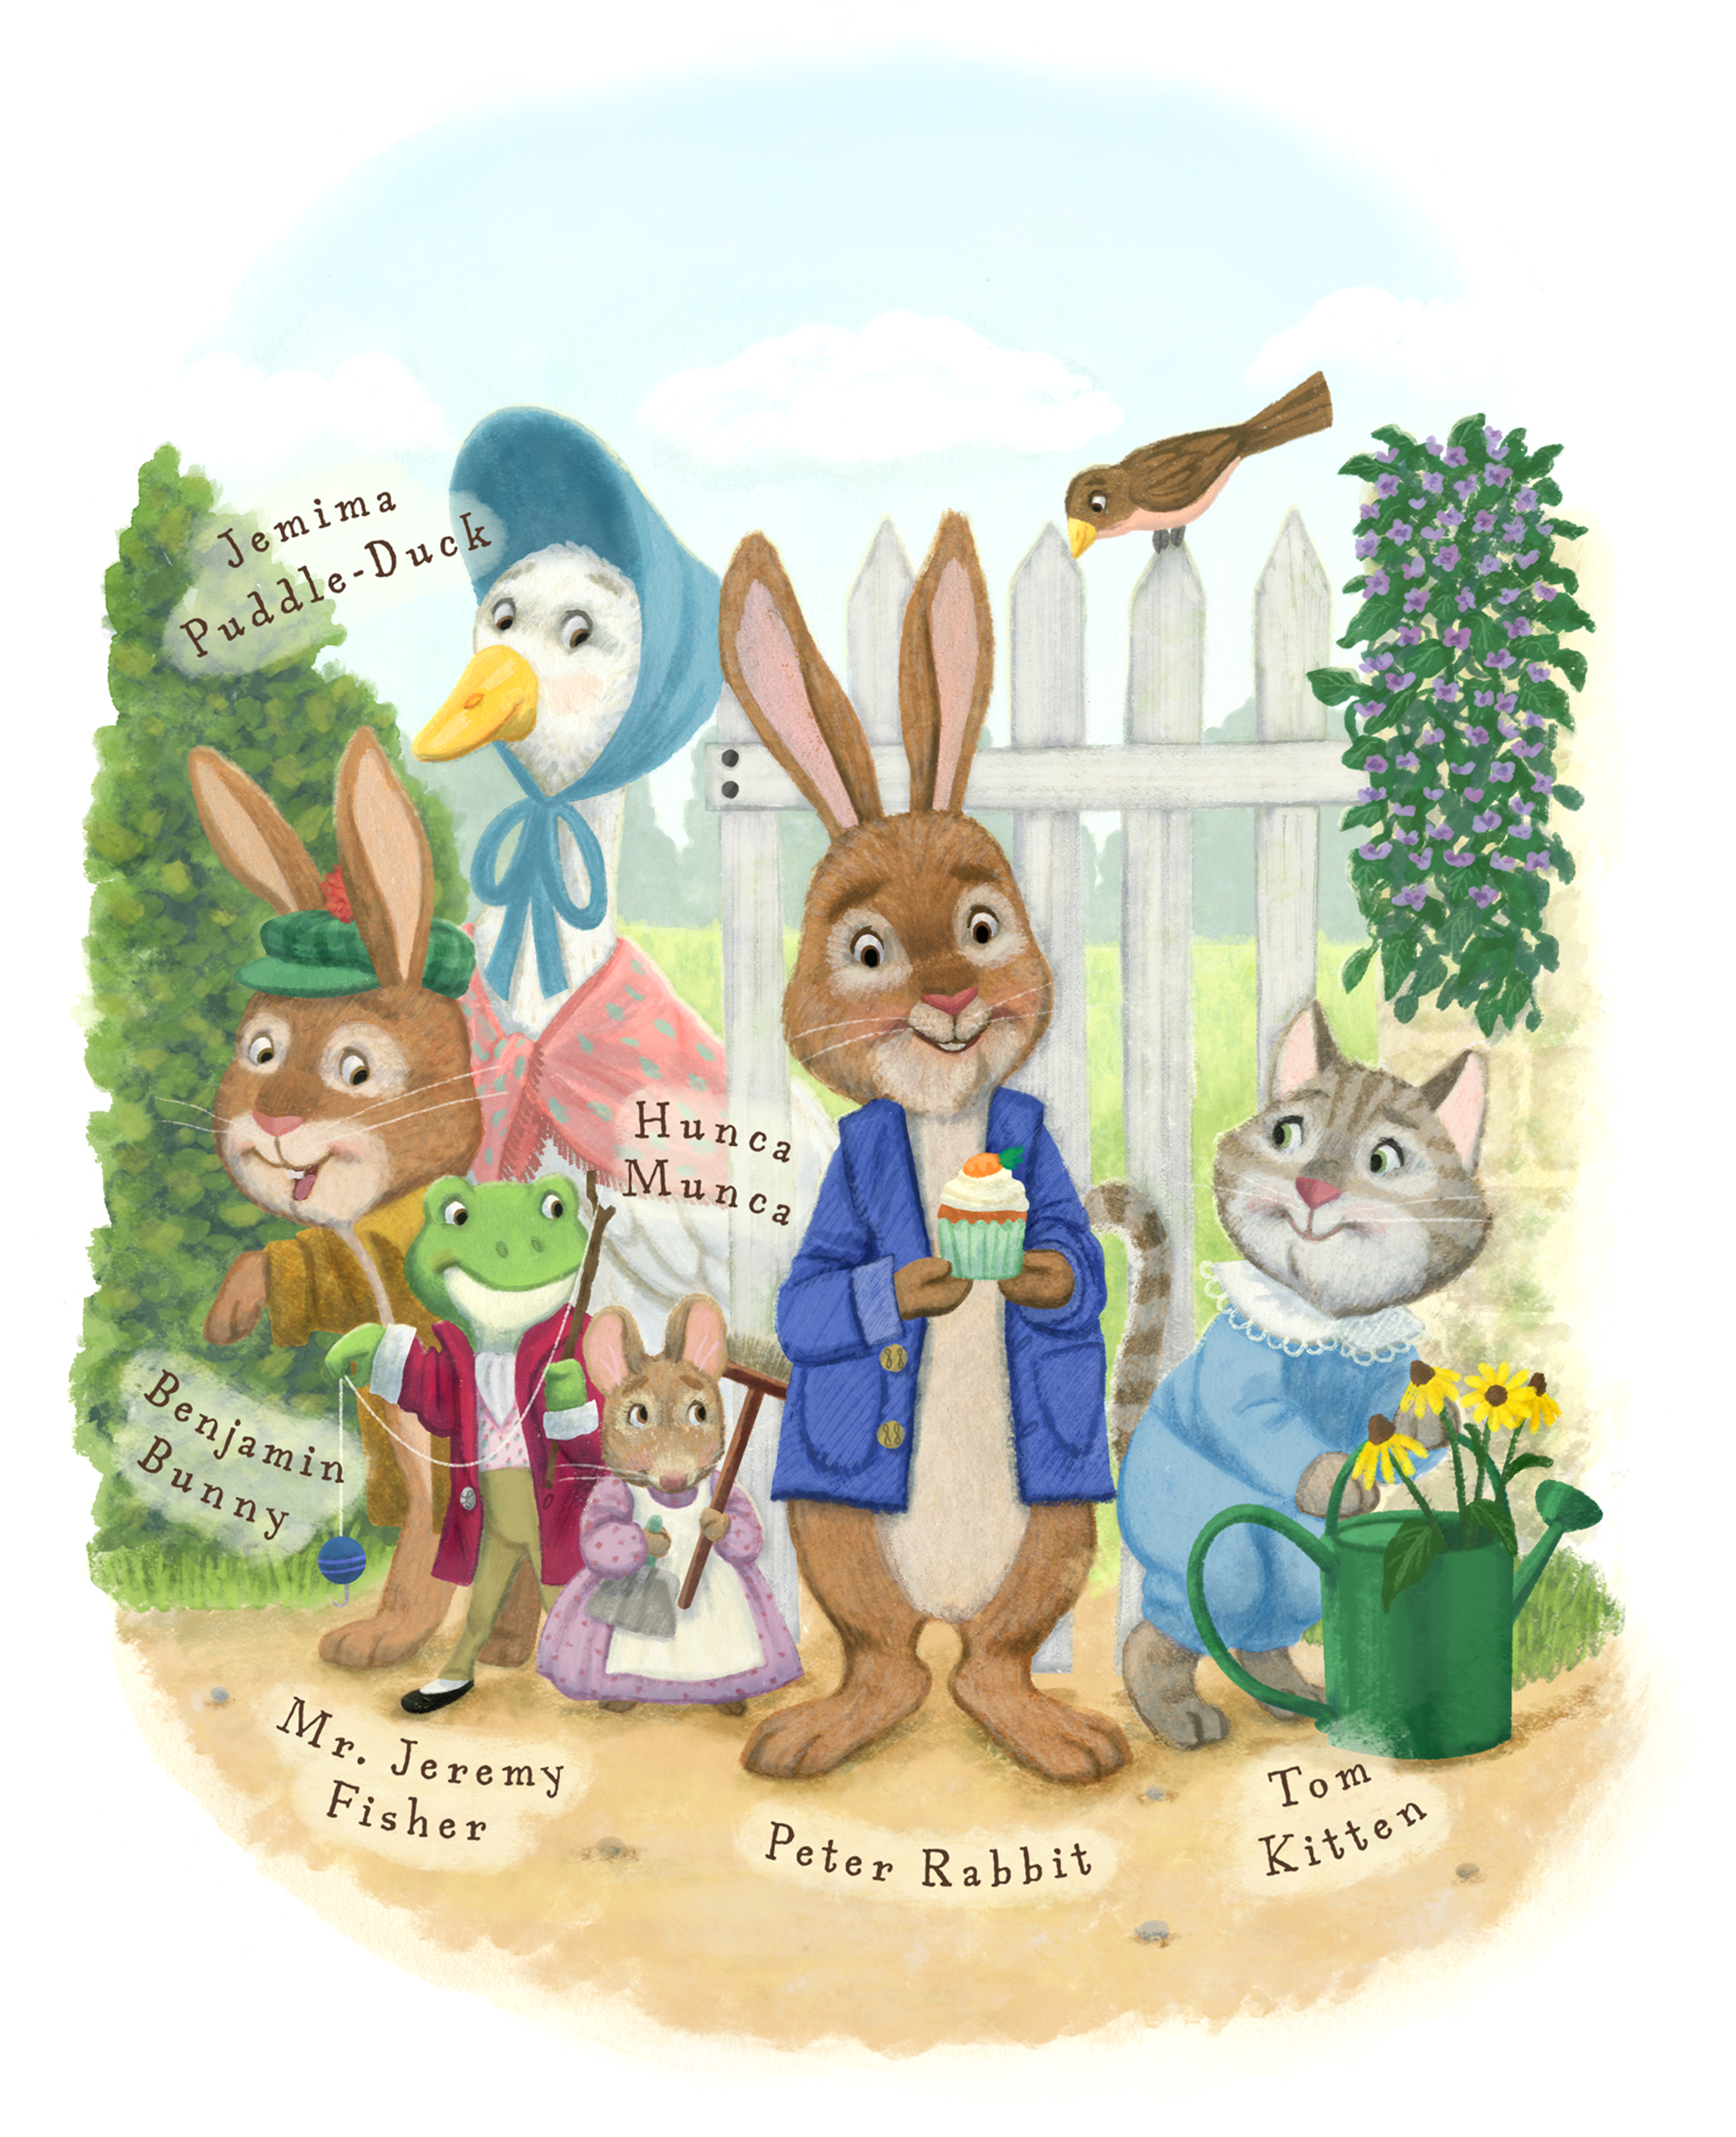 PeterRabbit_invite.jpg